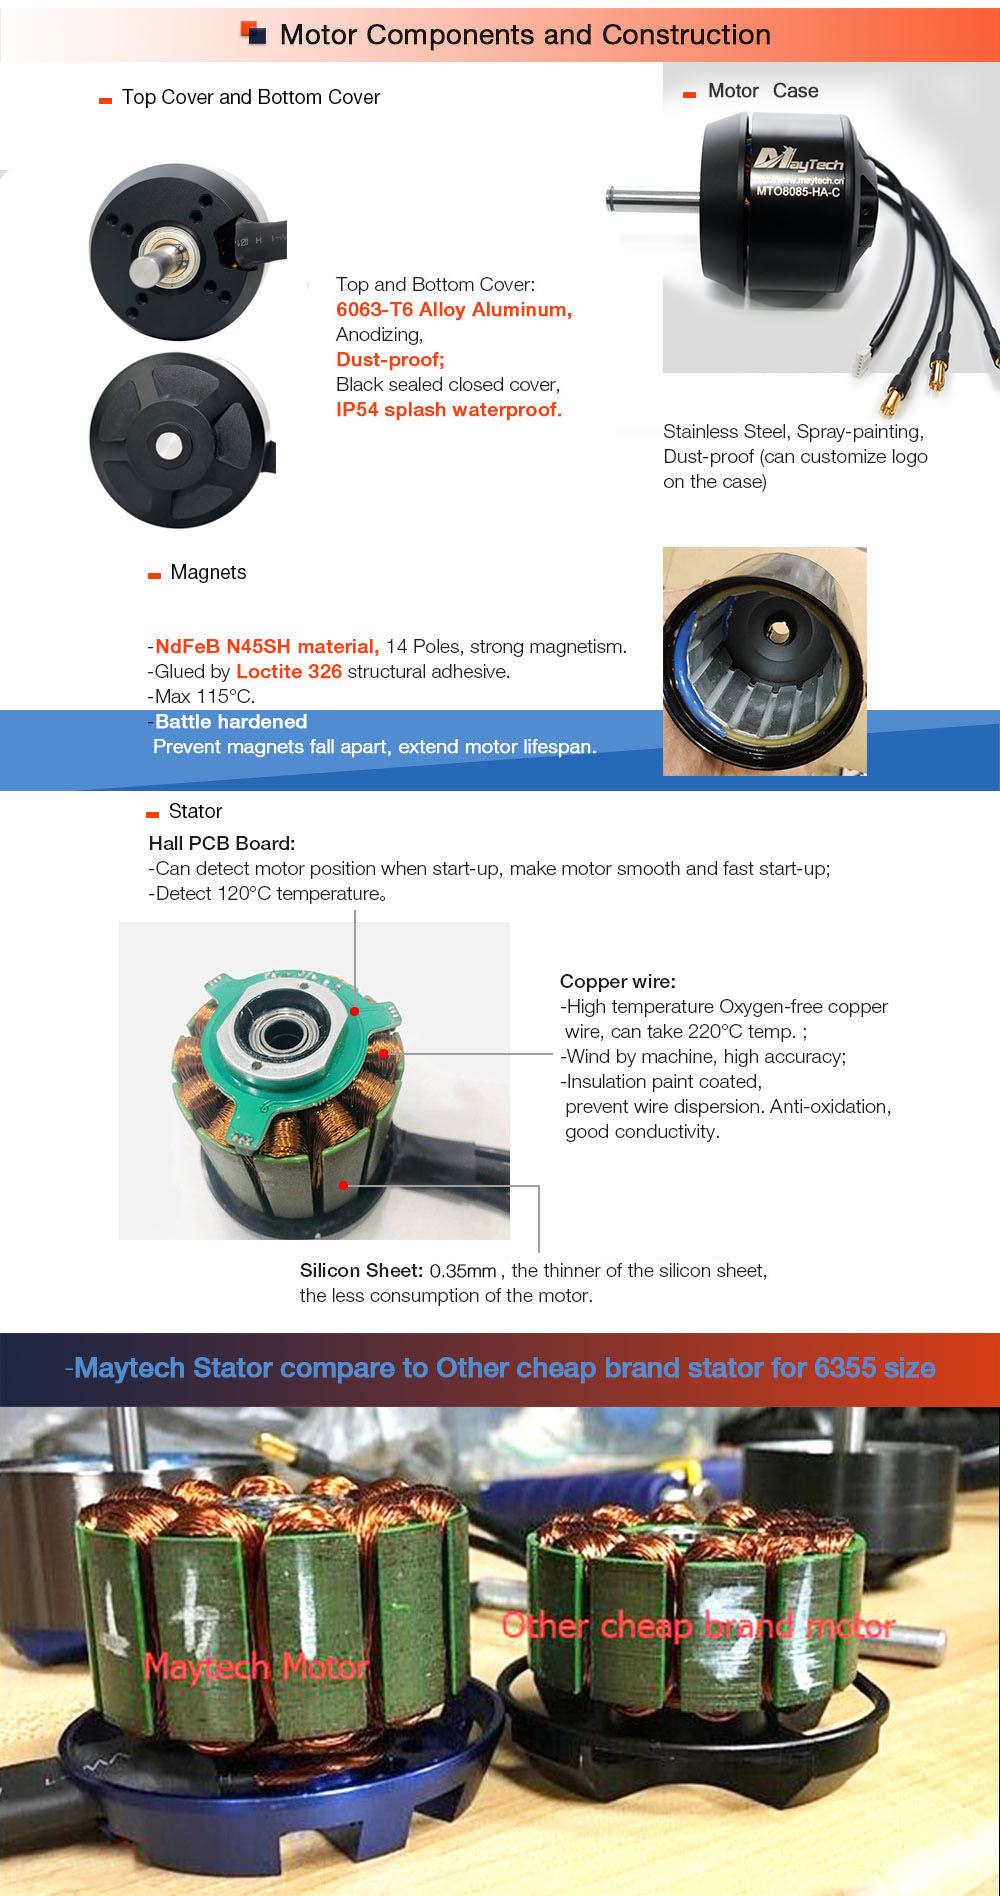 """Electric propulsion drive system Vehicle Maytech brushless closed cover outrunner motors are specially designed for electric skateboard. The motors come with low KV, high torque and efficiency.</div> <div style=""""padding-left: 30px;"""">All parts are made of a high-precision CNC machining center, and all surfaces are made with oxidation treatment. High temperatu"""